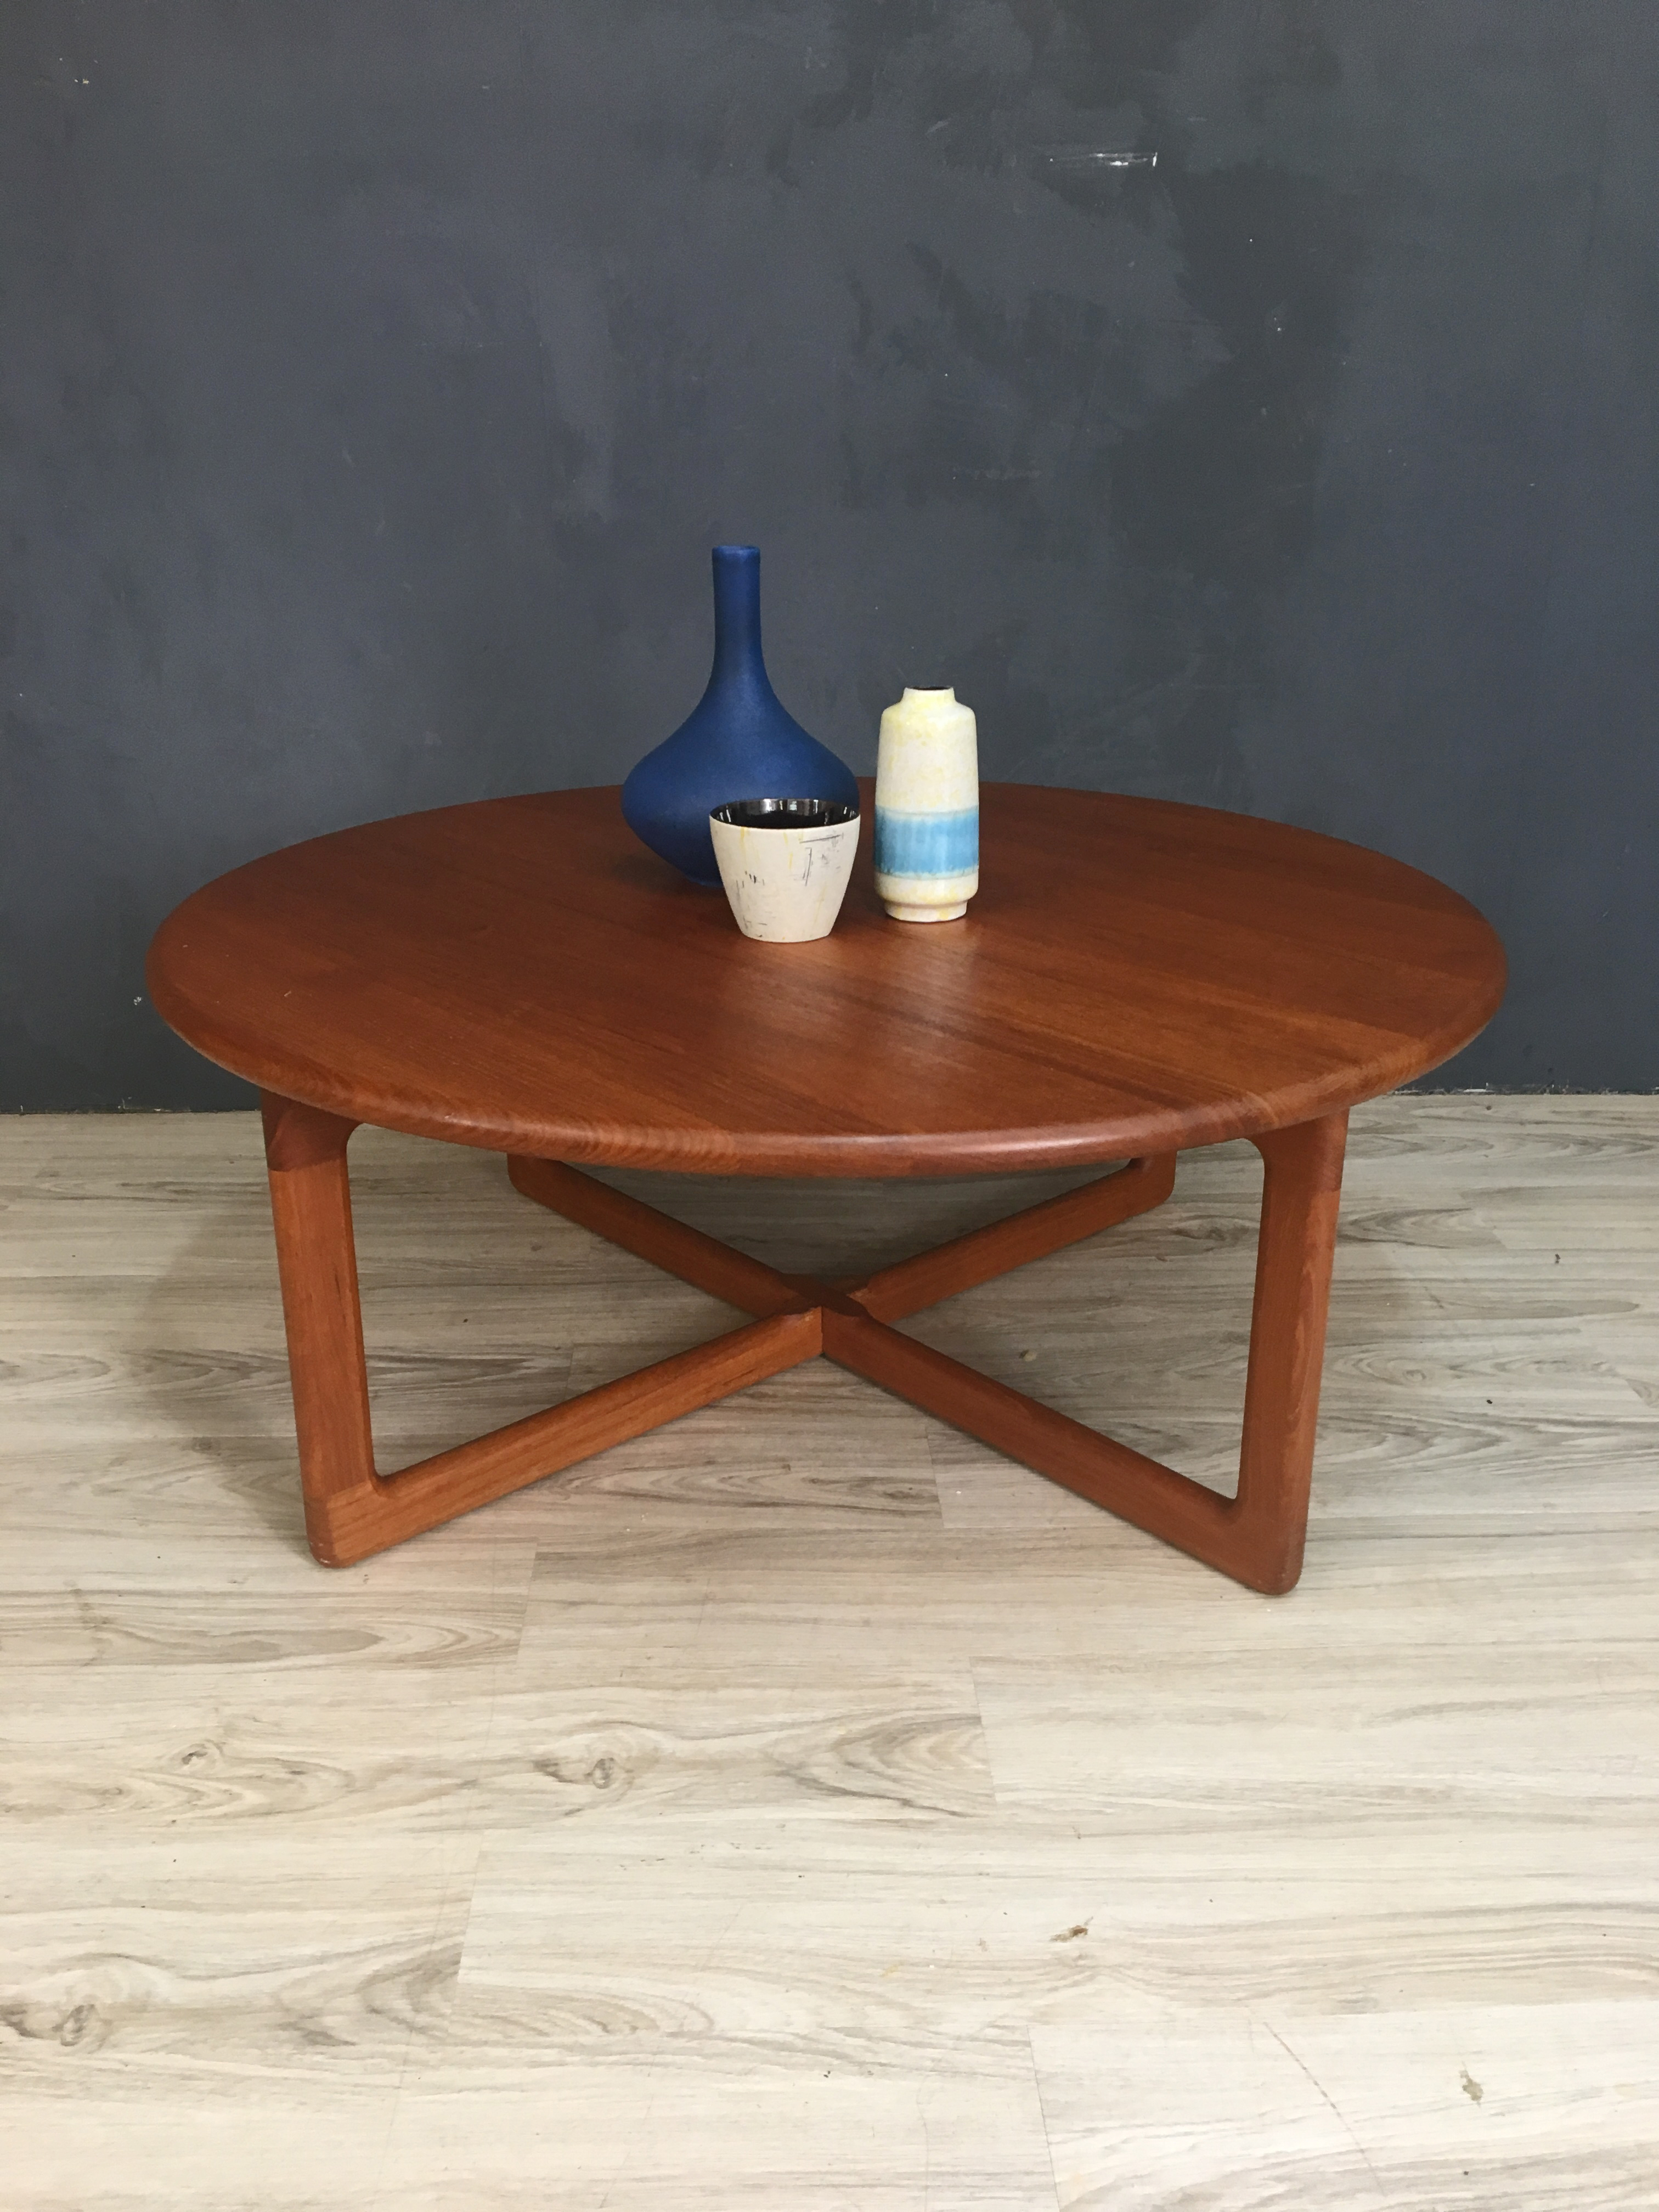 Best And Newest Danishmodern Round Teak Coffee Table – Retrocraft Design Within Round Teak Coffee Tables (View 17 of 20)